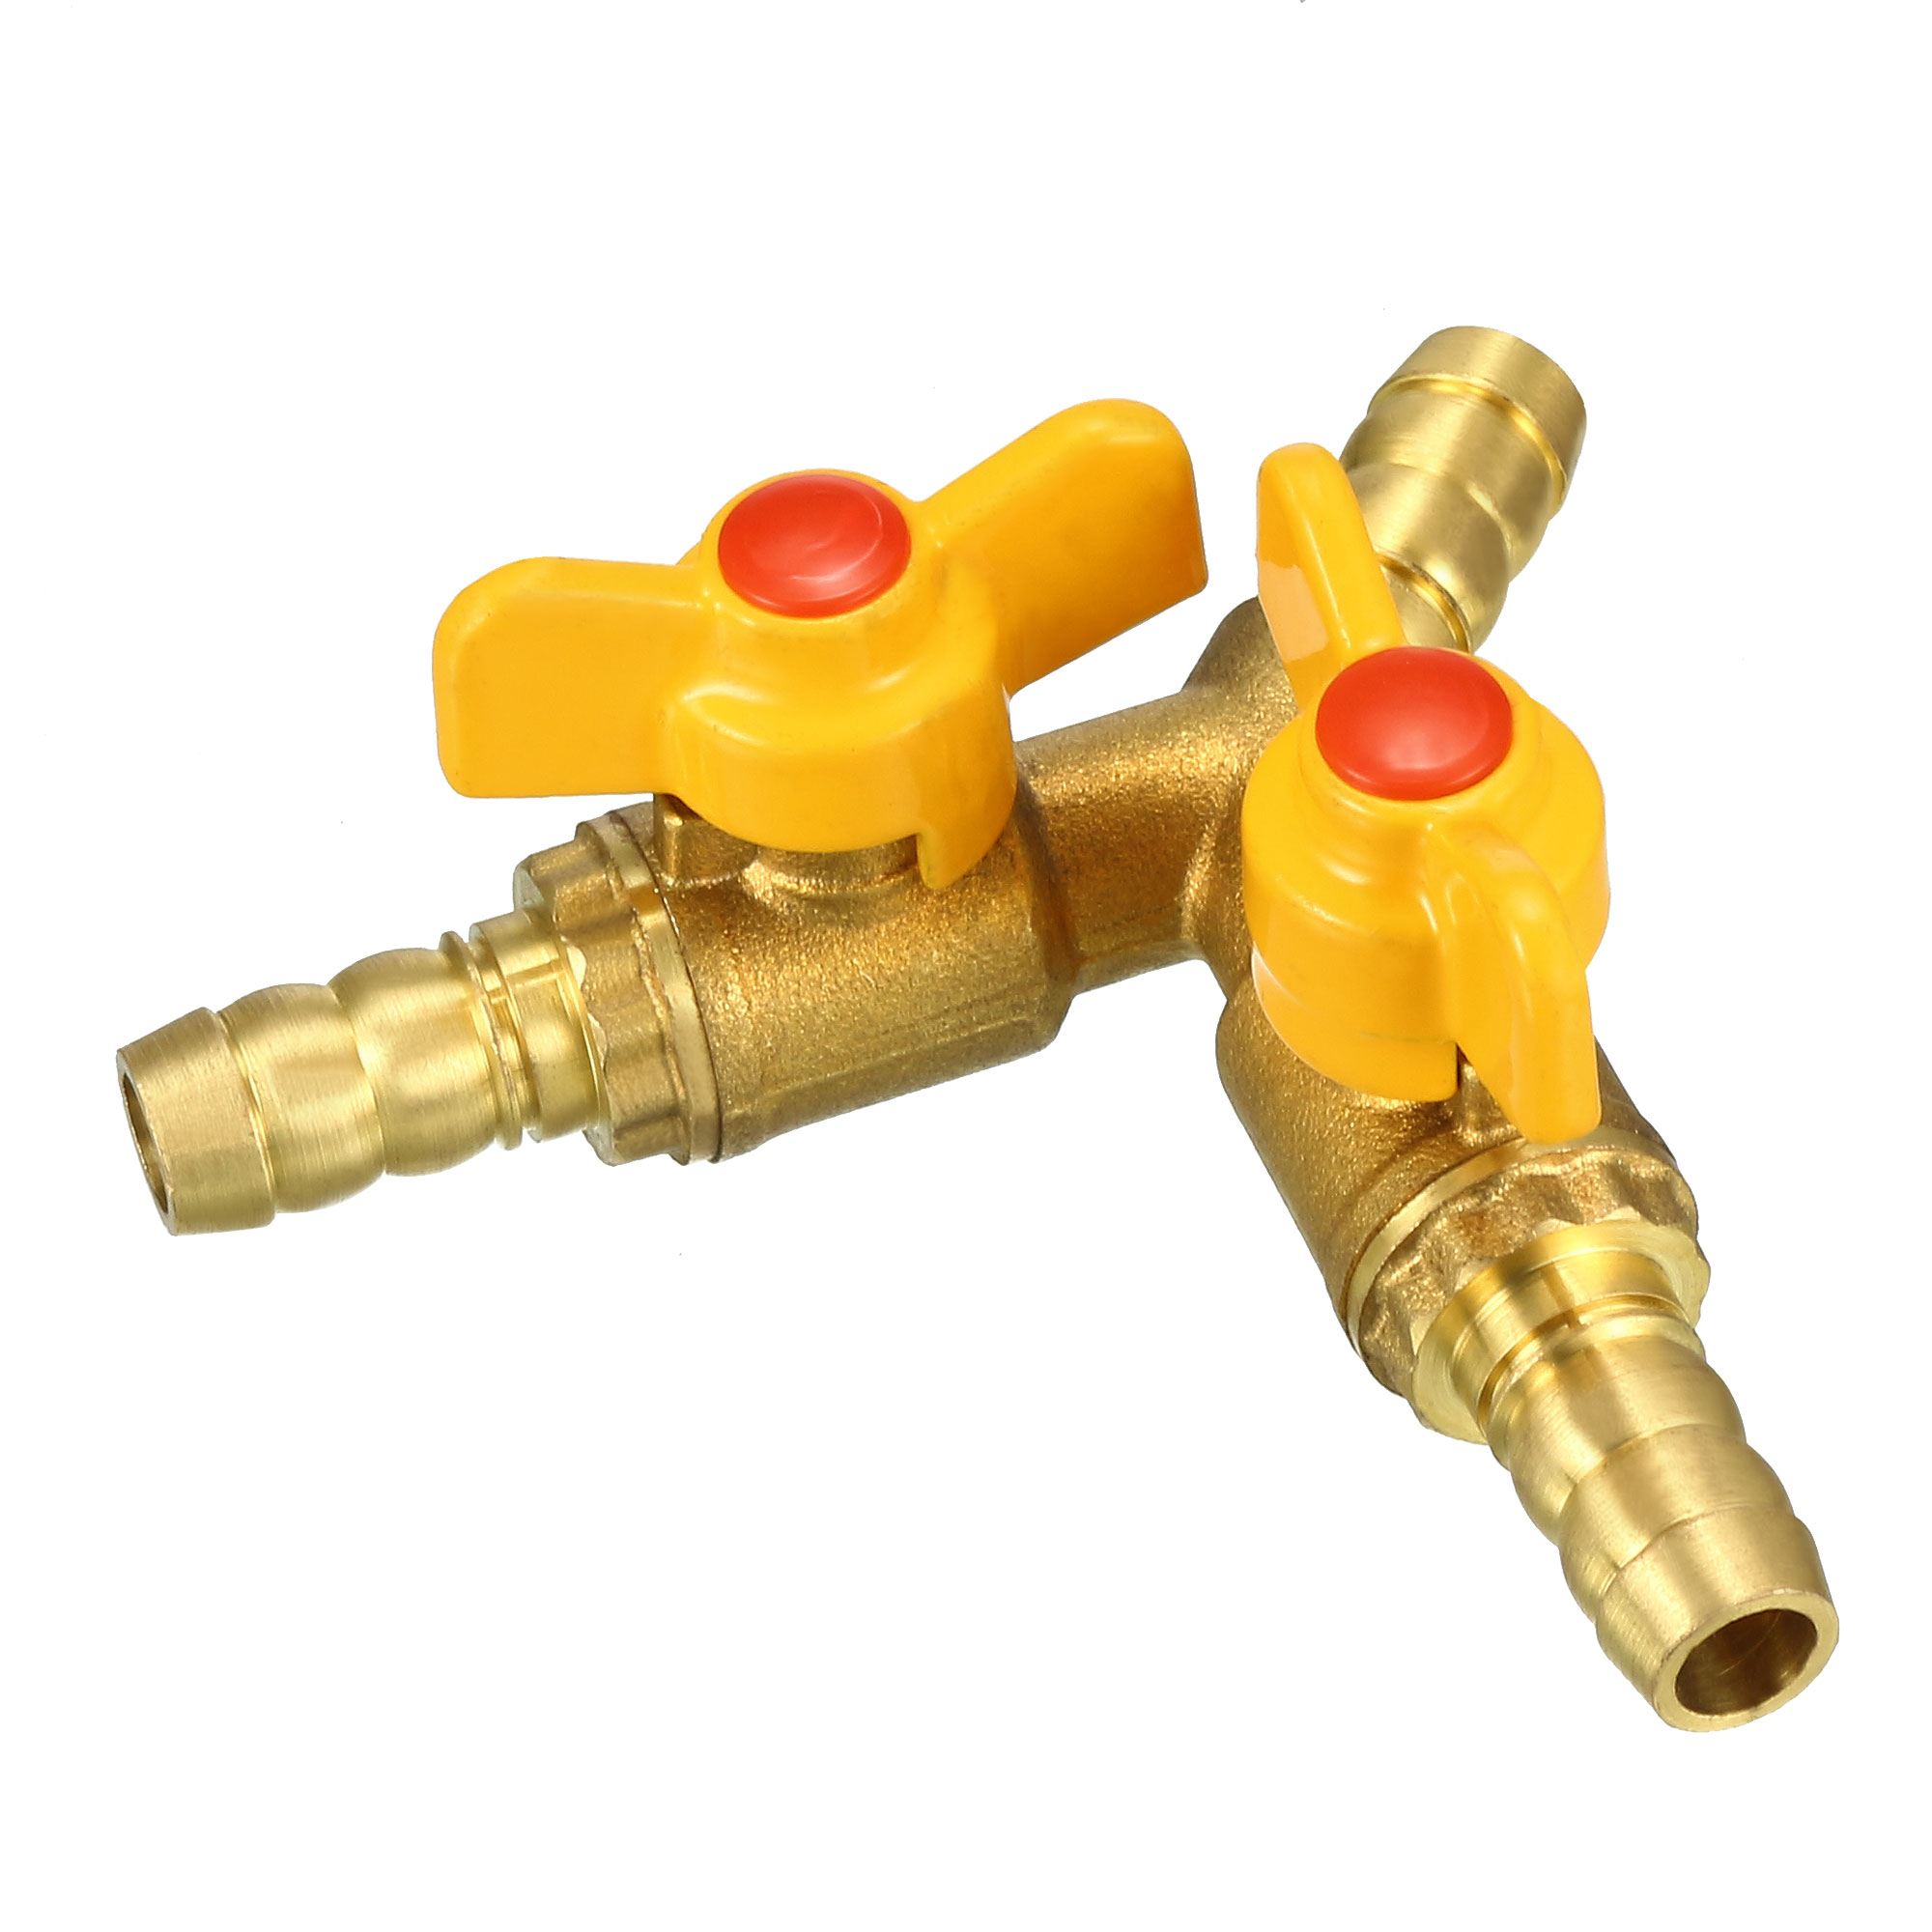 10mm Hose Barb Y Shape 3 Way Brass Shut Off Ball Valve Fitting Connector